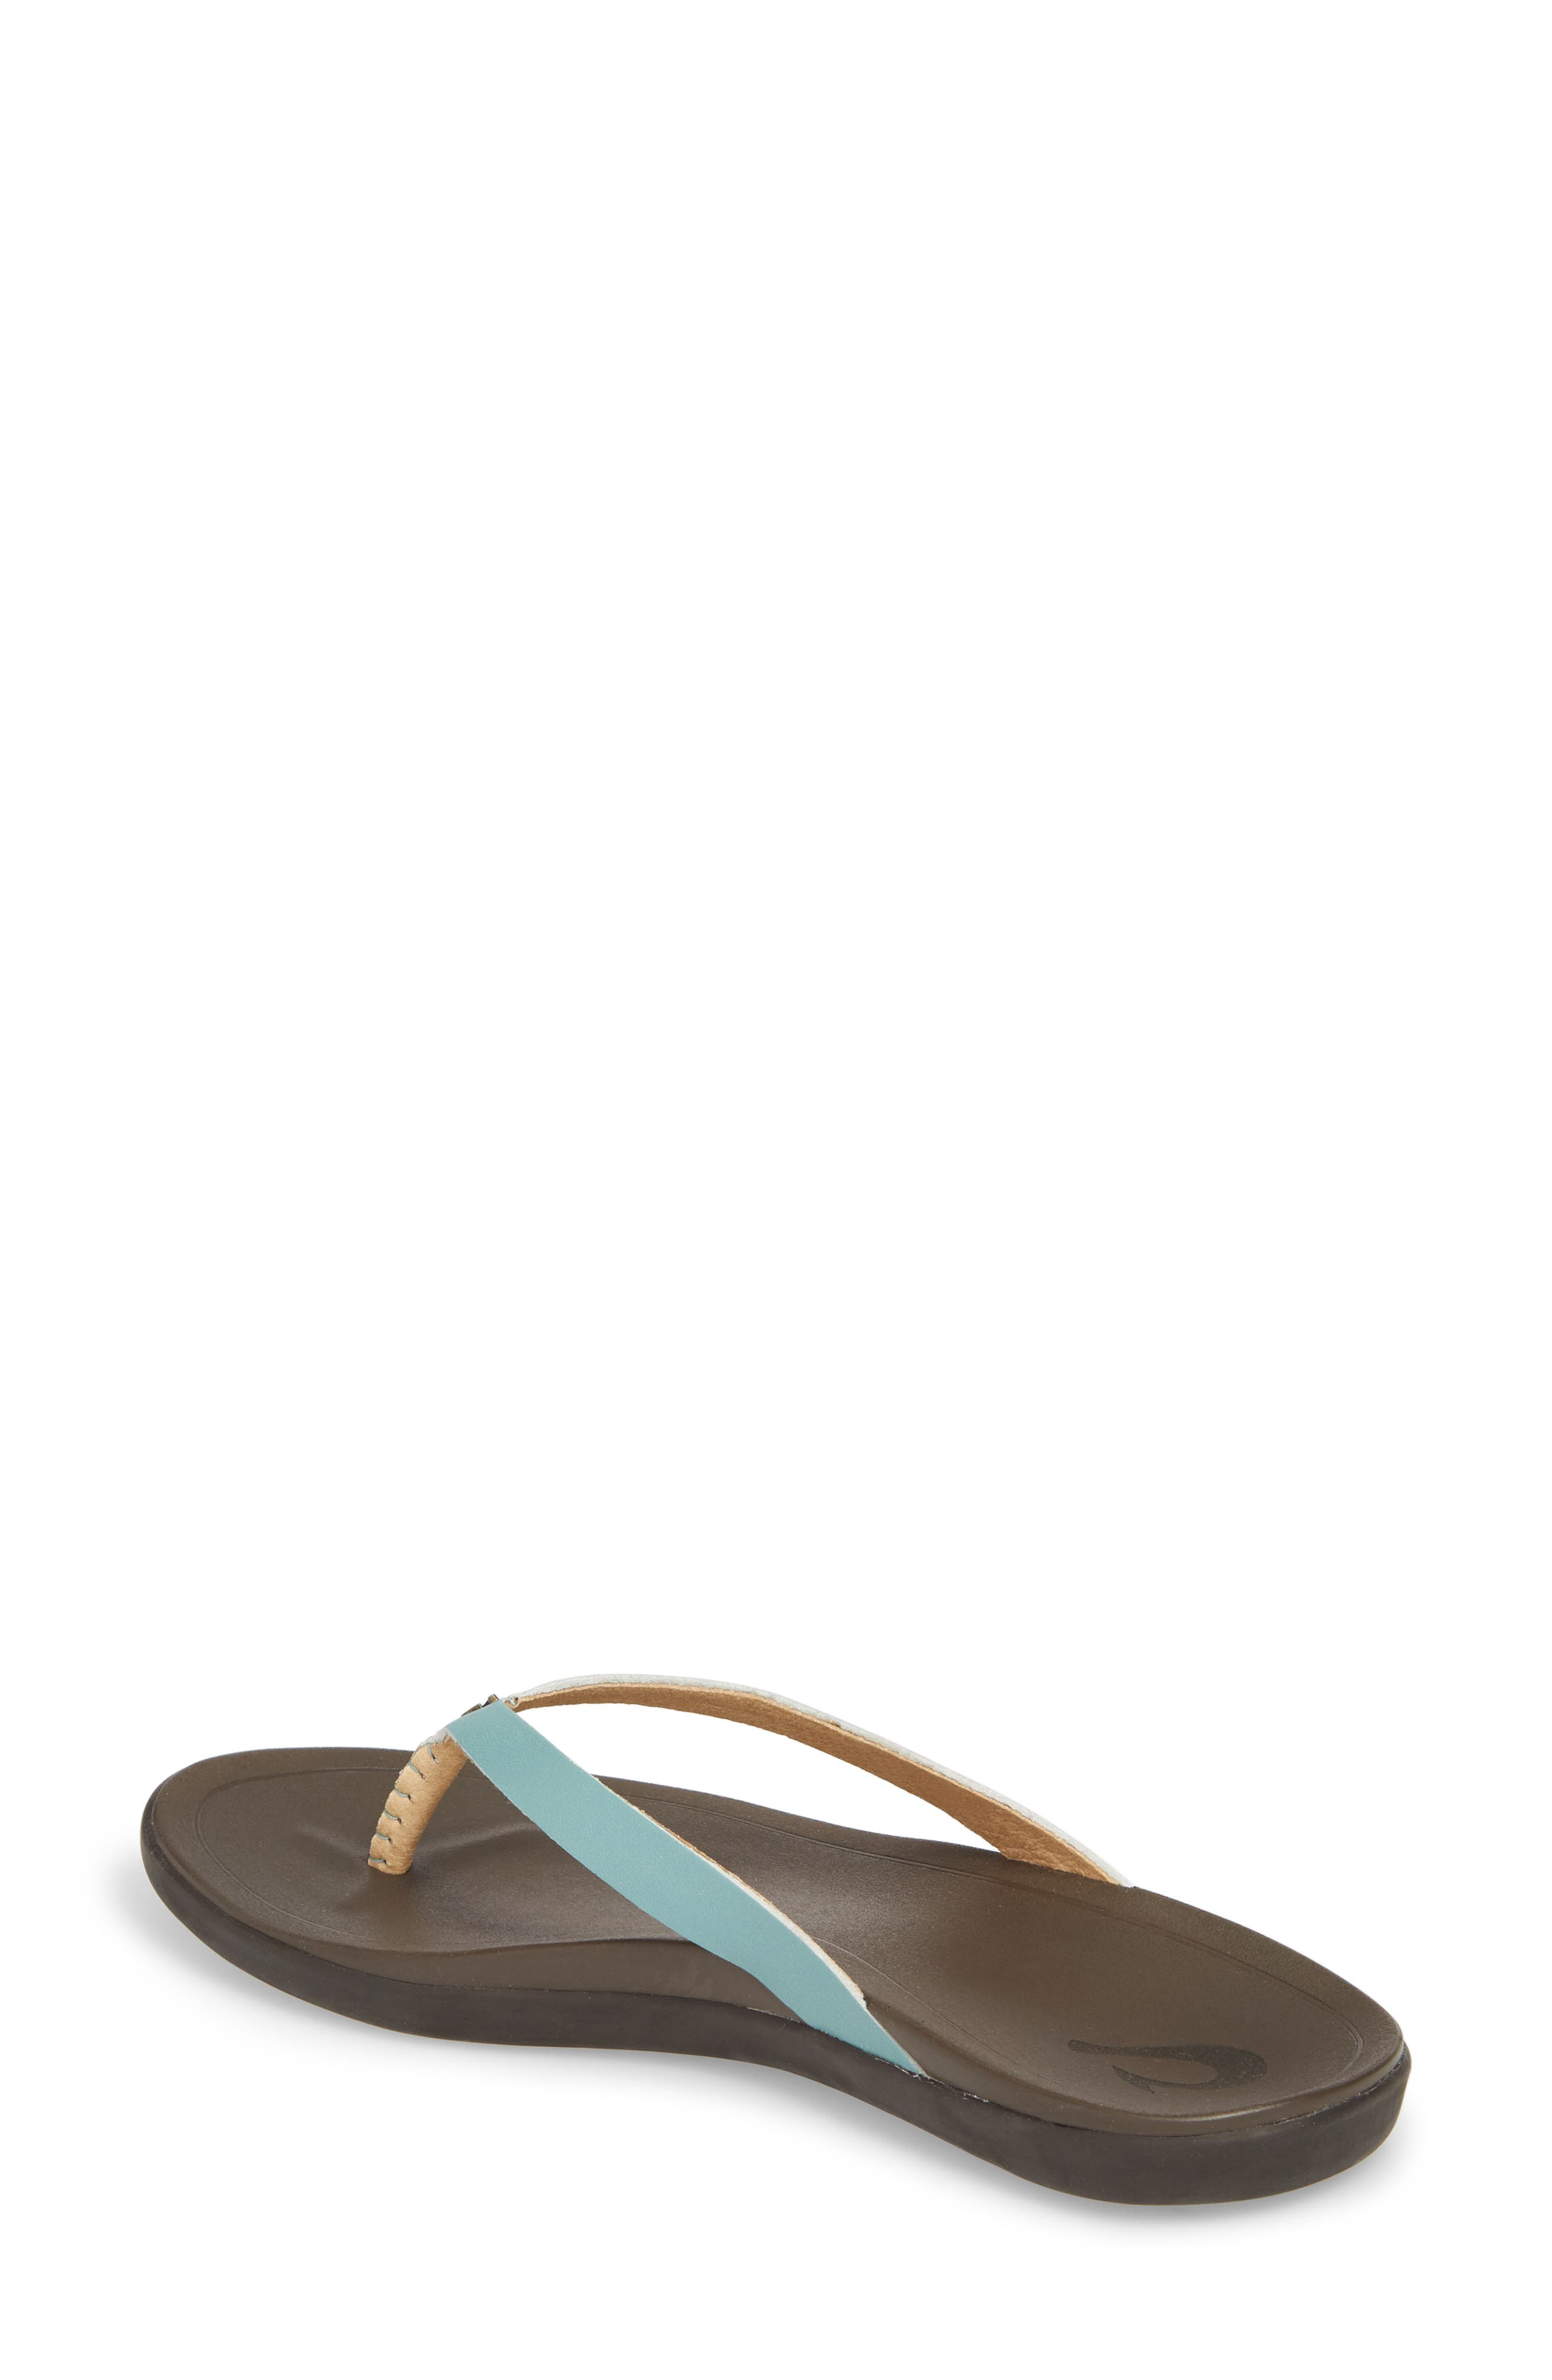 'Ho Opio' Leather Flip Flop,                             Alternate thumbnail 2, color,                             MINERAL BLUE/ DARK JAVA